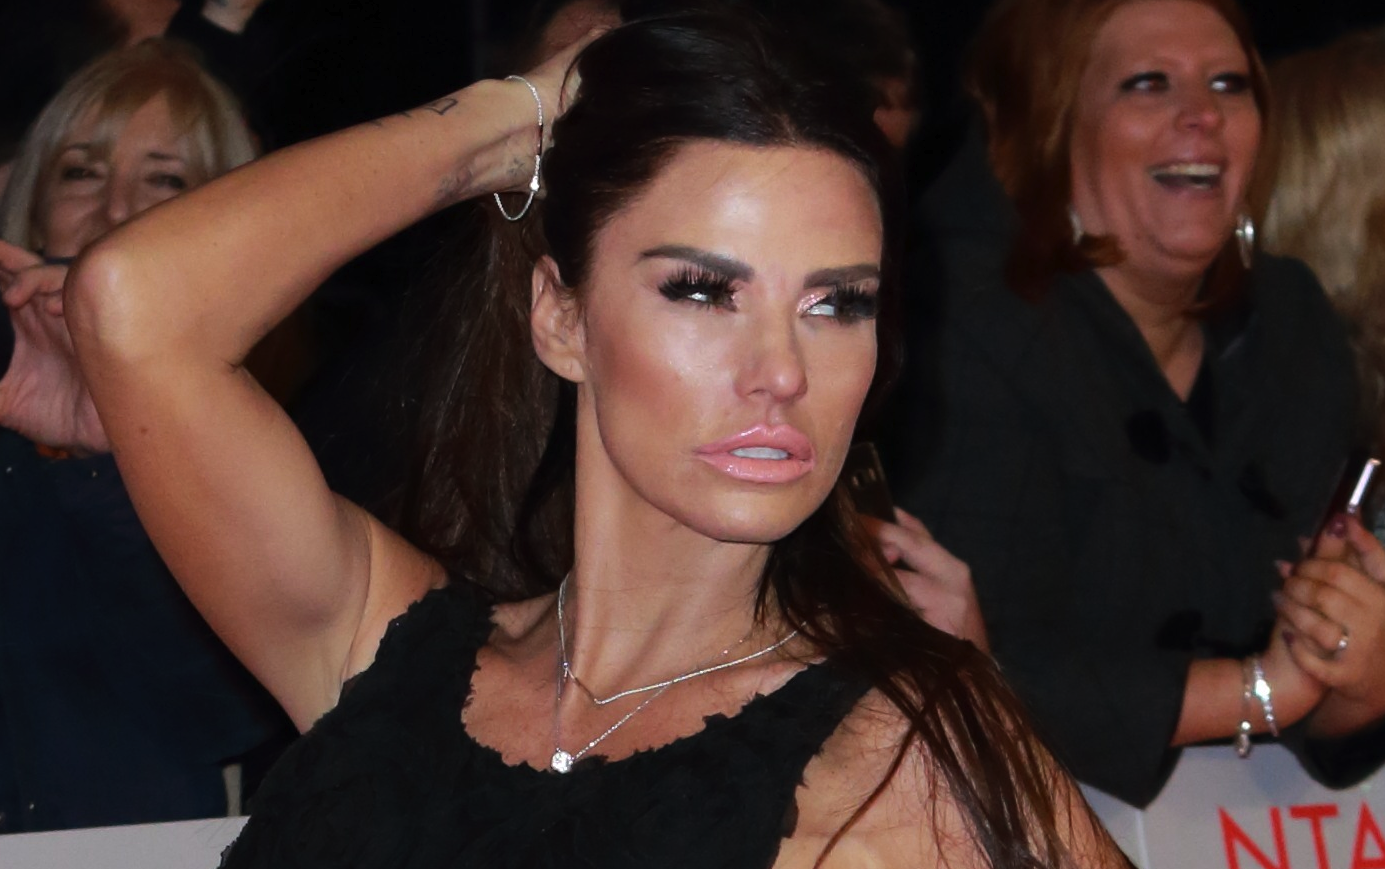 Katie Price 'needs help with cosmetic surgery obsession', claims pal